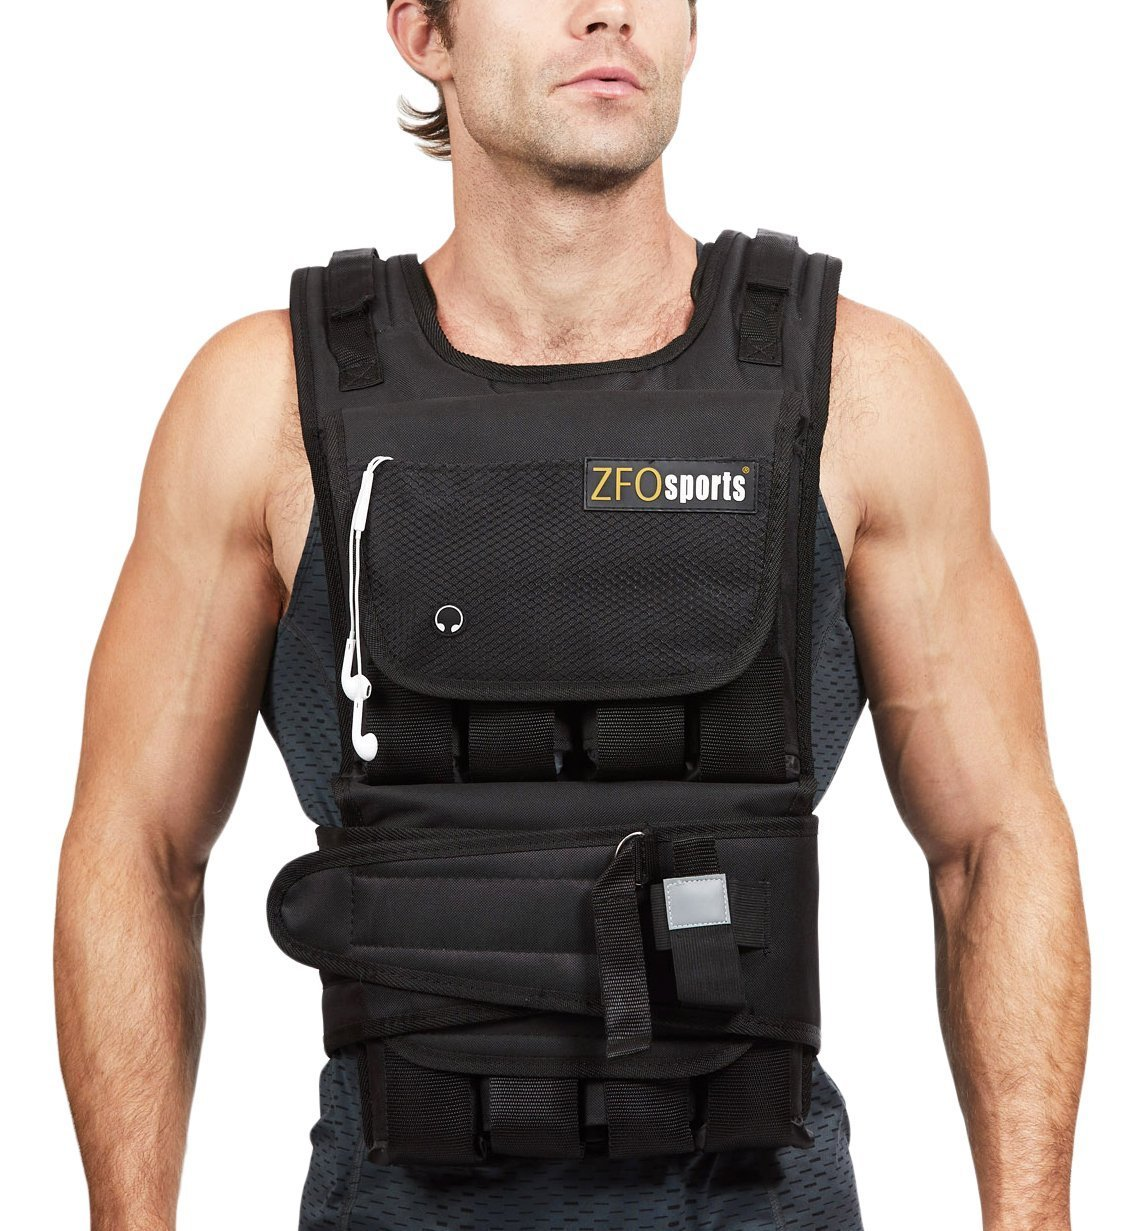 ZFOsports 40 Pounds Adjustable Weighted Vest Review